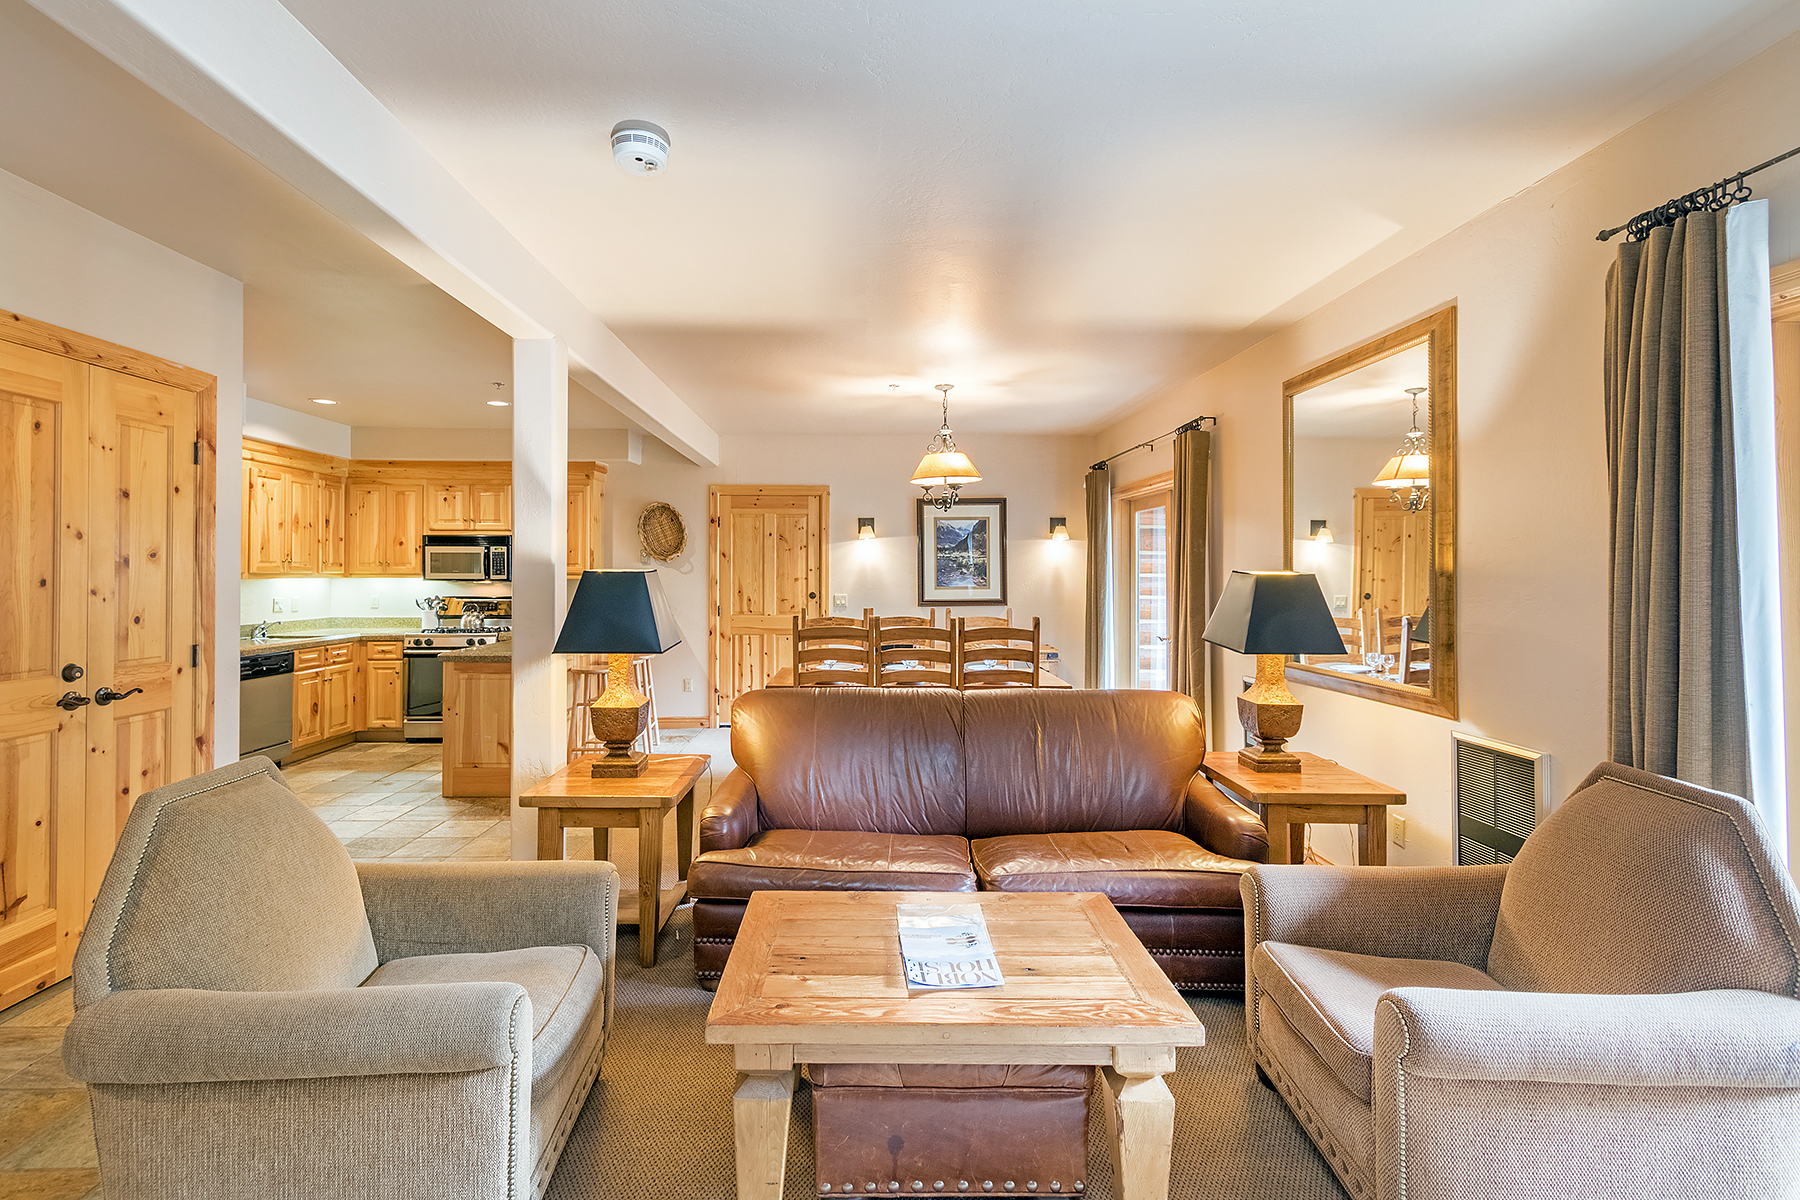 Condominium for Sale at 4114/4116 Mountain Lodge 457 Mountain Village Blvd, Summit Suite 4114/4116 Telluride, Colorado, 81435 United States